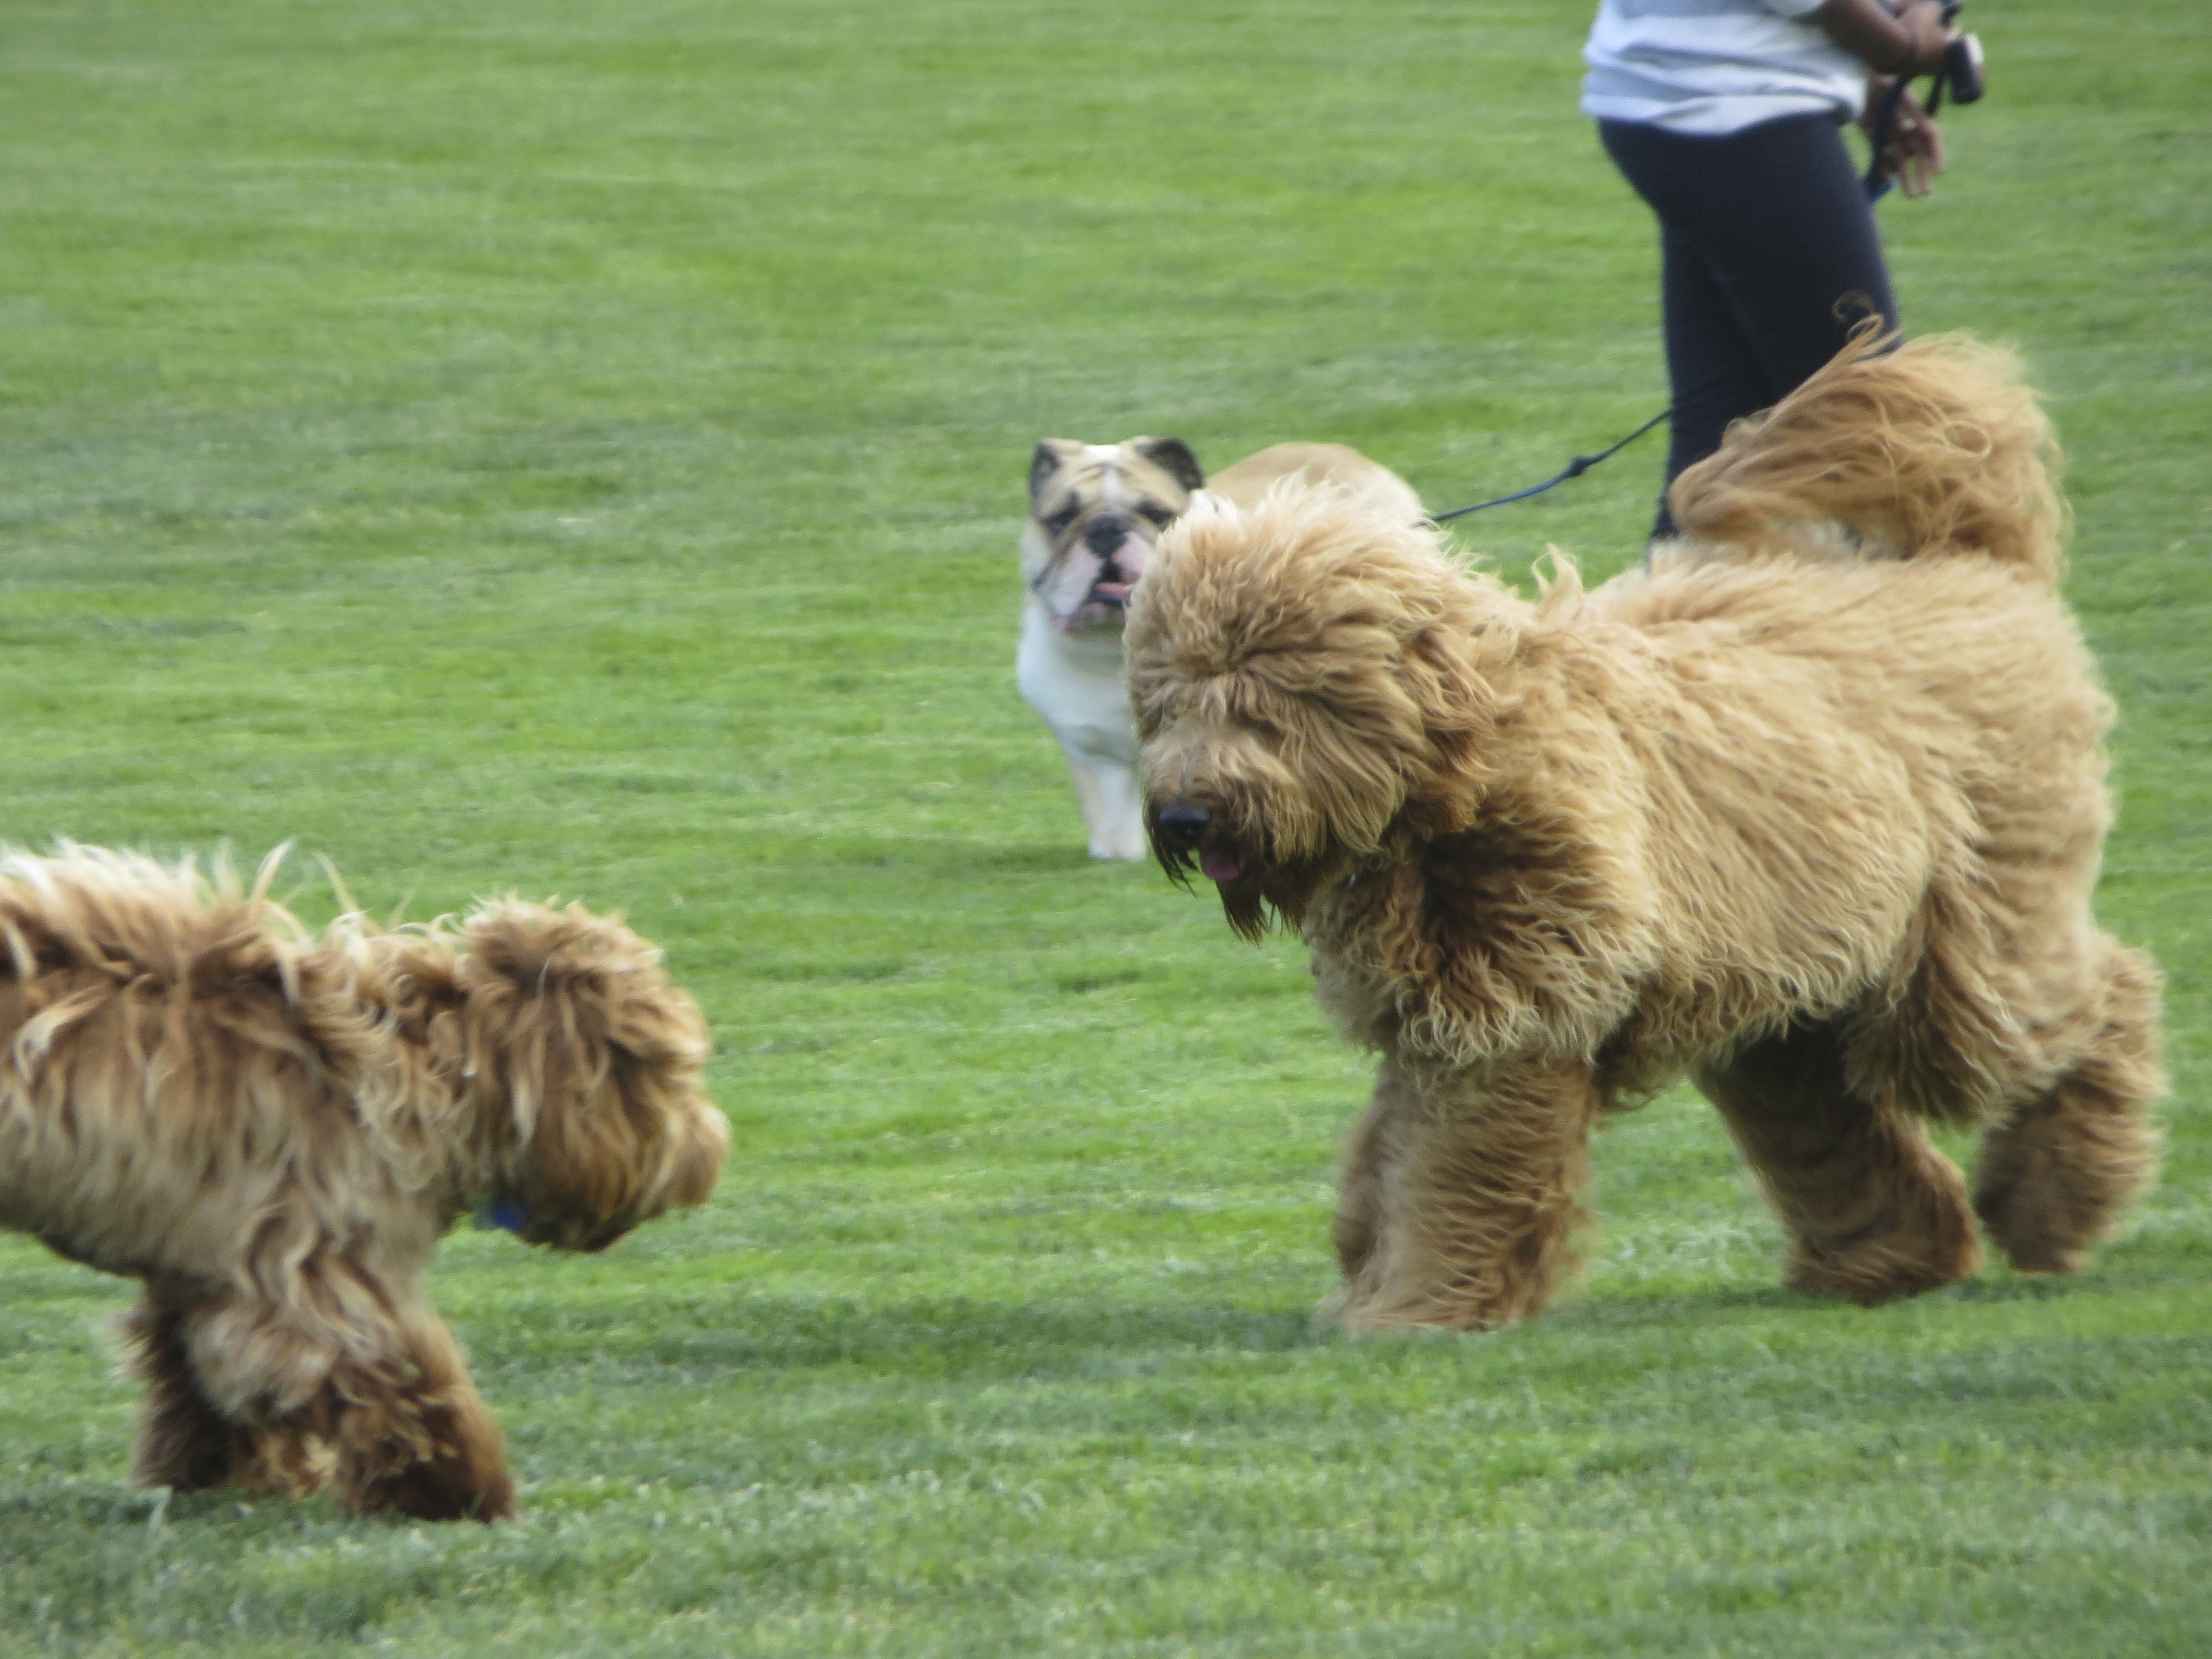 Golden-colored Goldendoodle, Brown/Gold Labradoodle, and Brown and White English Bulldog